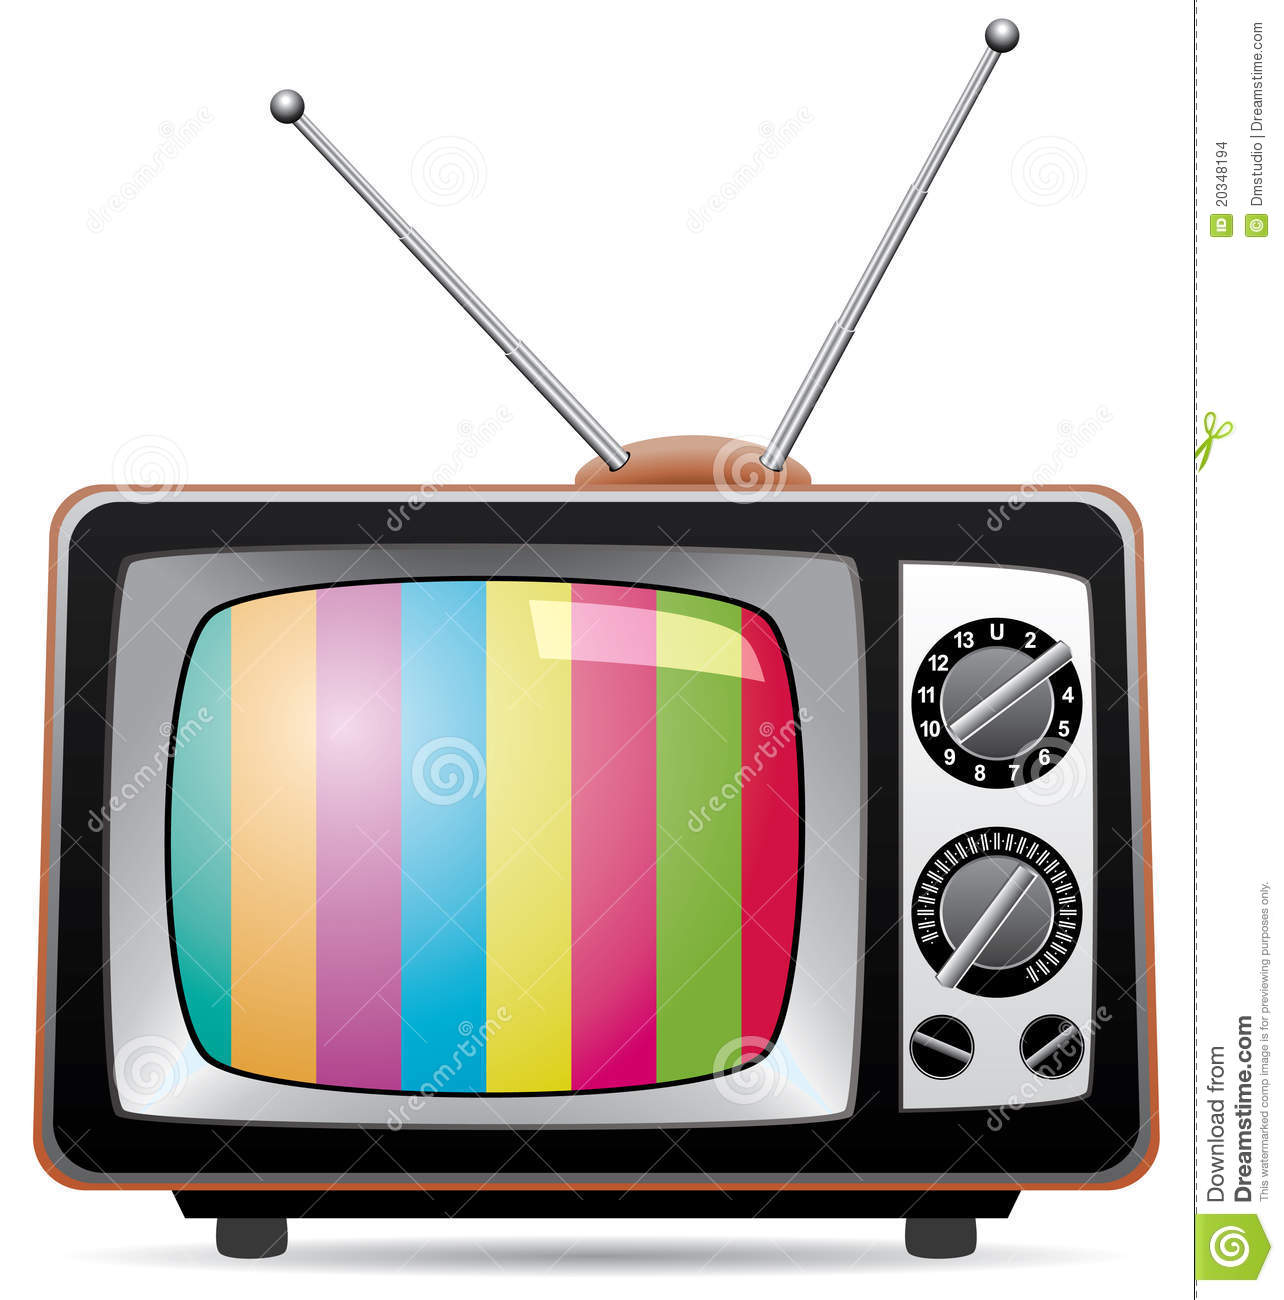 Retro Tv Set Stock Images - Image: 20348194